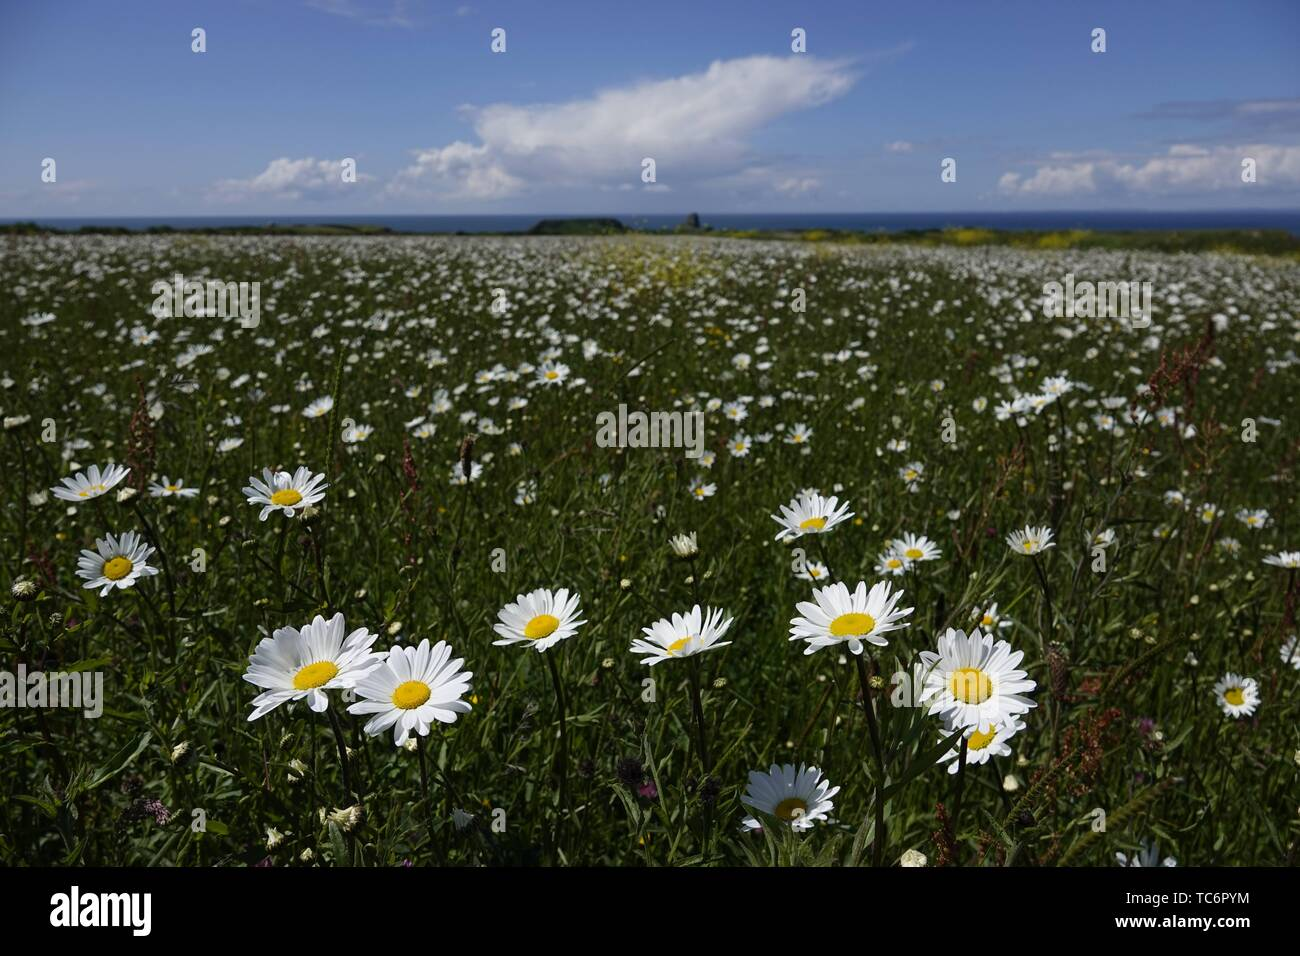 Gower, Swansea, Wales, UK. 6th June 2019. Weather: Dog daisies lap up the sunshine at National Trust Rhosili (correct,1's') on the Gower peninsula, south Wales. An ancient strip farming area known as The Vile is planted with fields of flowers to encourage bees and enhance the biodiversity. The forecast is for wetter weather  tomorrow.  Credit: Gareth Llewelyn/Alamy Live News Stock Photo